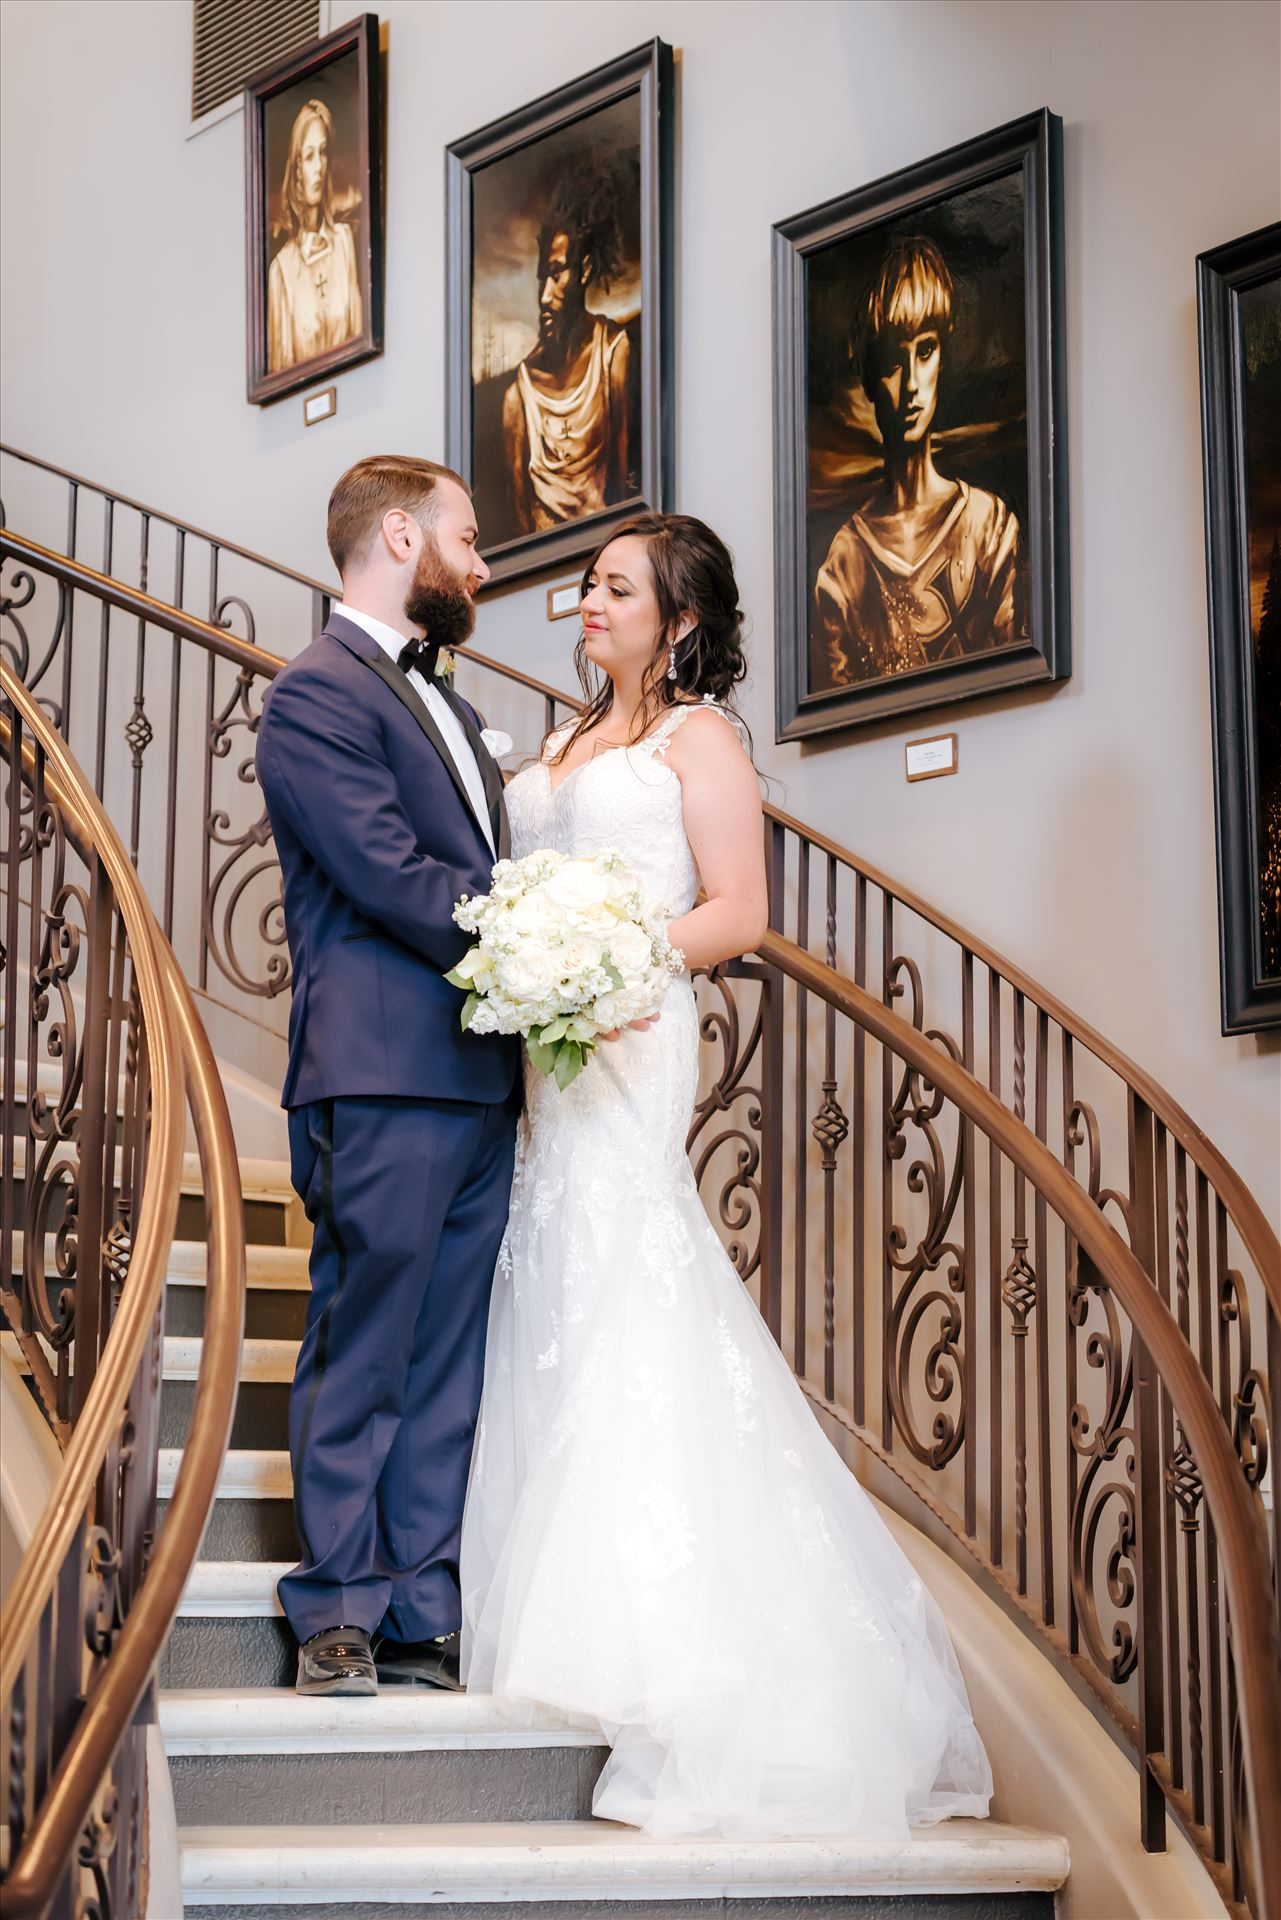 FW-1534.JPG Tooth and Nail Winery elegant and formal wedding in Paso Robles California wine country by Mirror's Edge Photography, San Luis Obispo County Wedding Photographer.  Bride and Groom on Tooth and Nail Staircase. by Sarah Williams